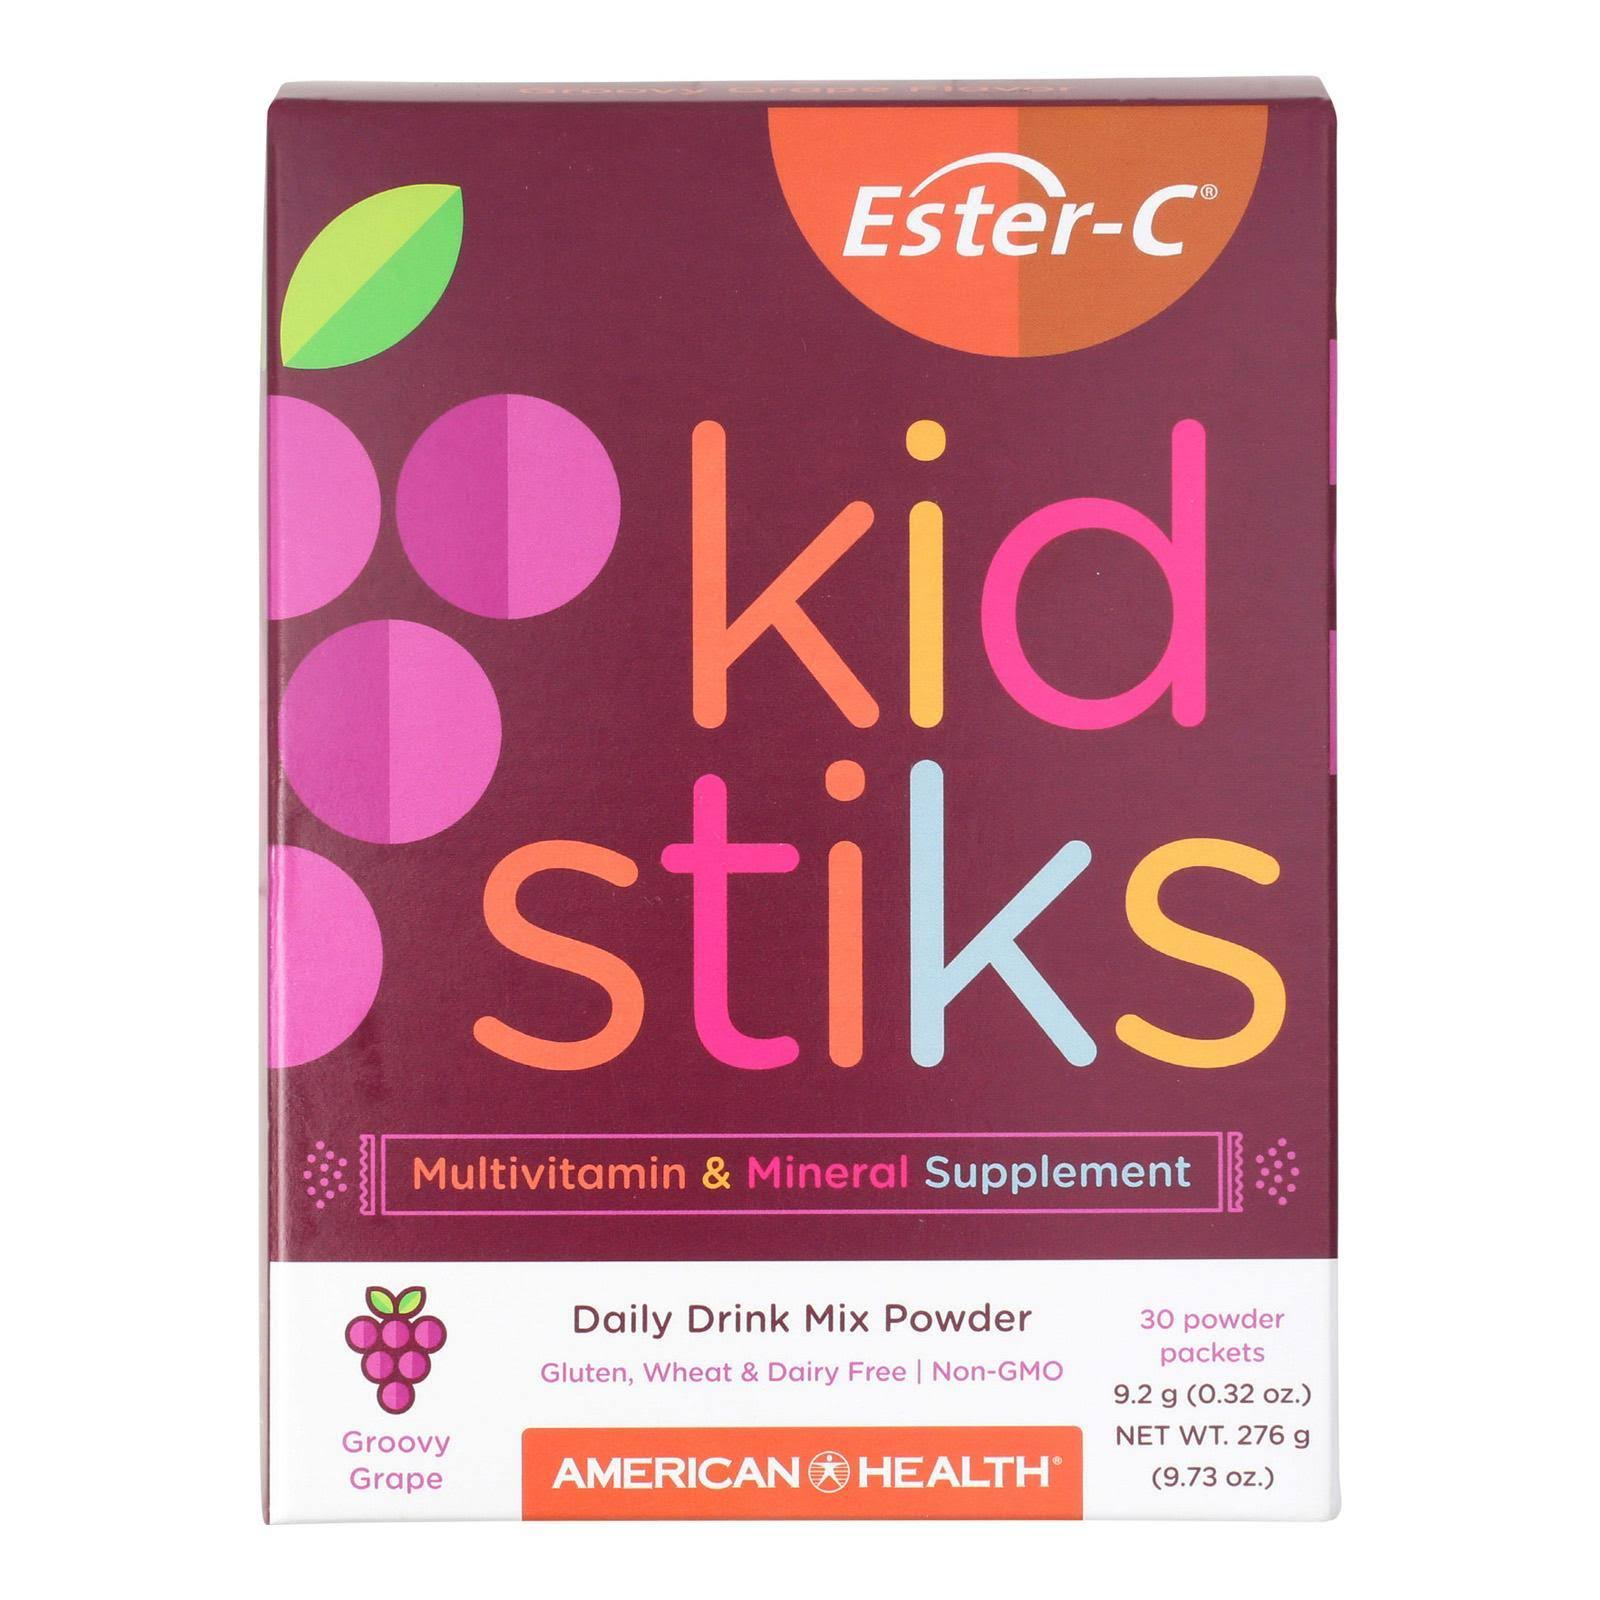 Ester-c Kidstiks Powder Sticks Supplement - Groovy Grape, 250mg, 30pk